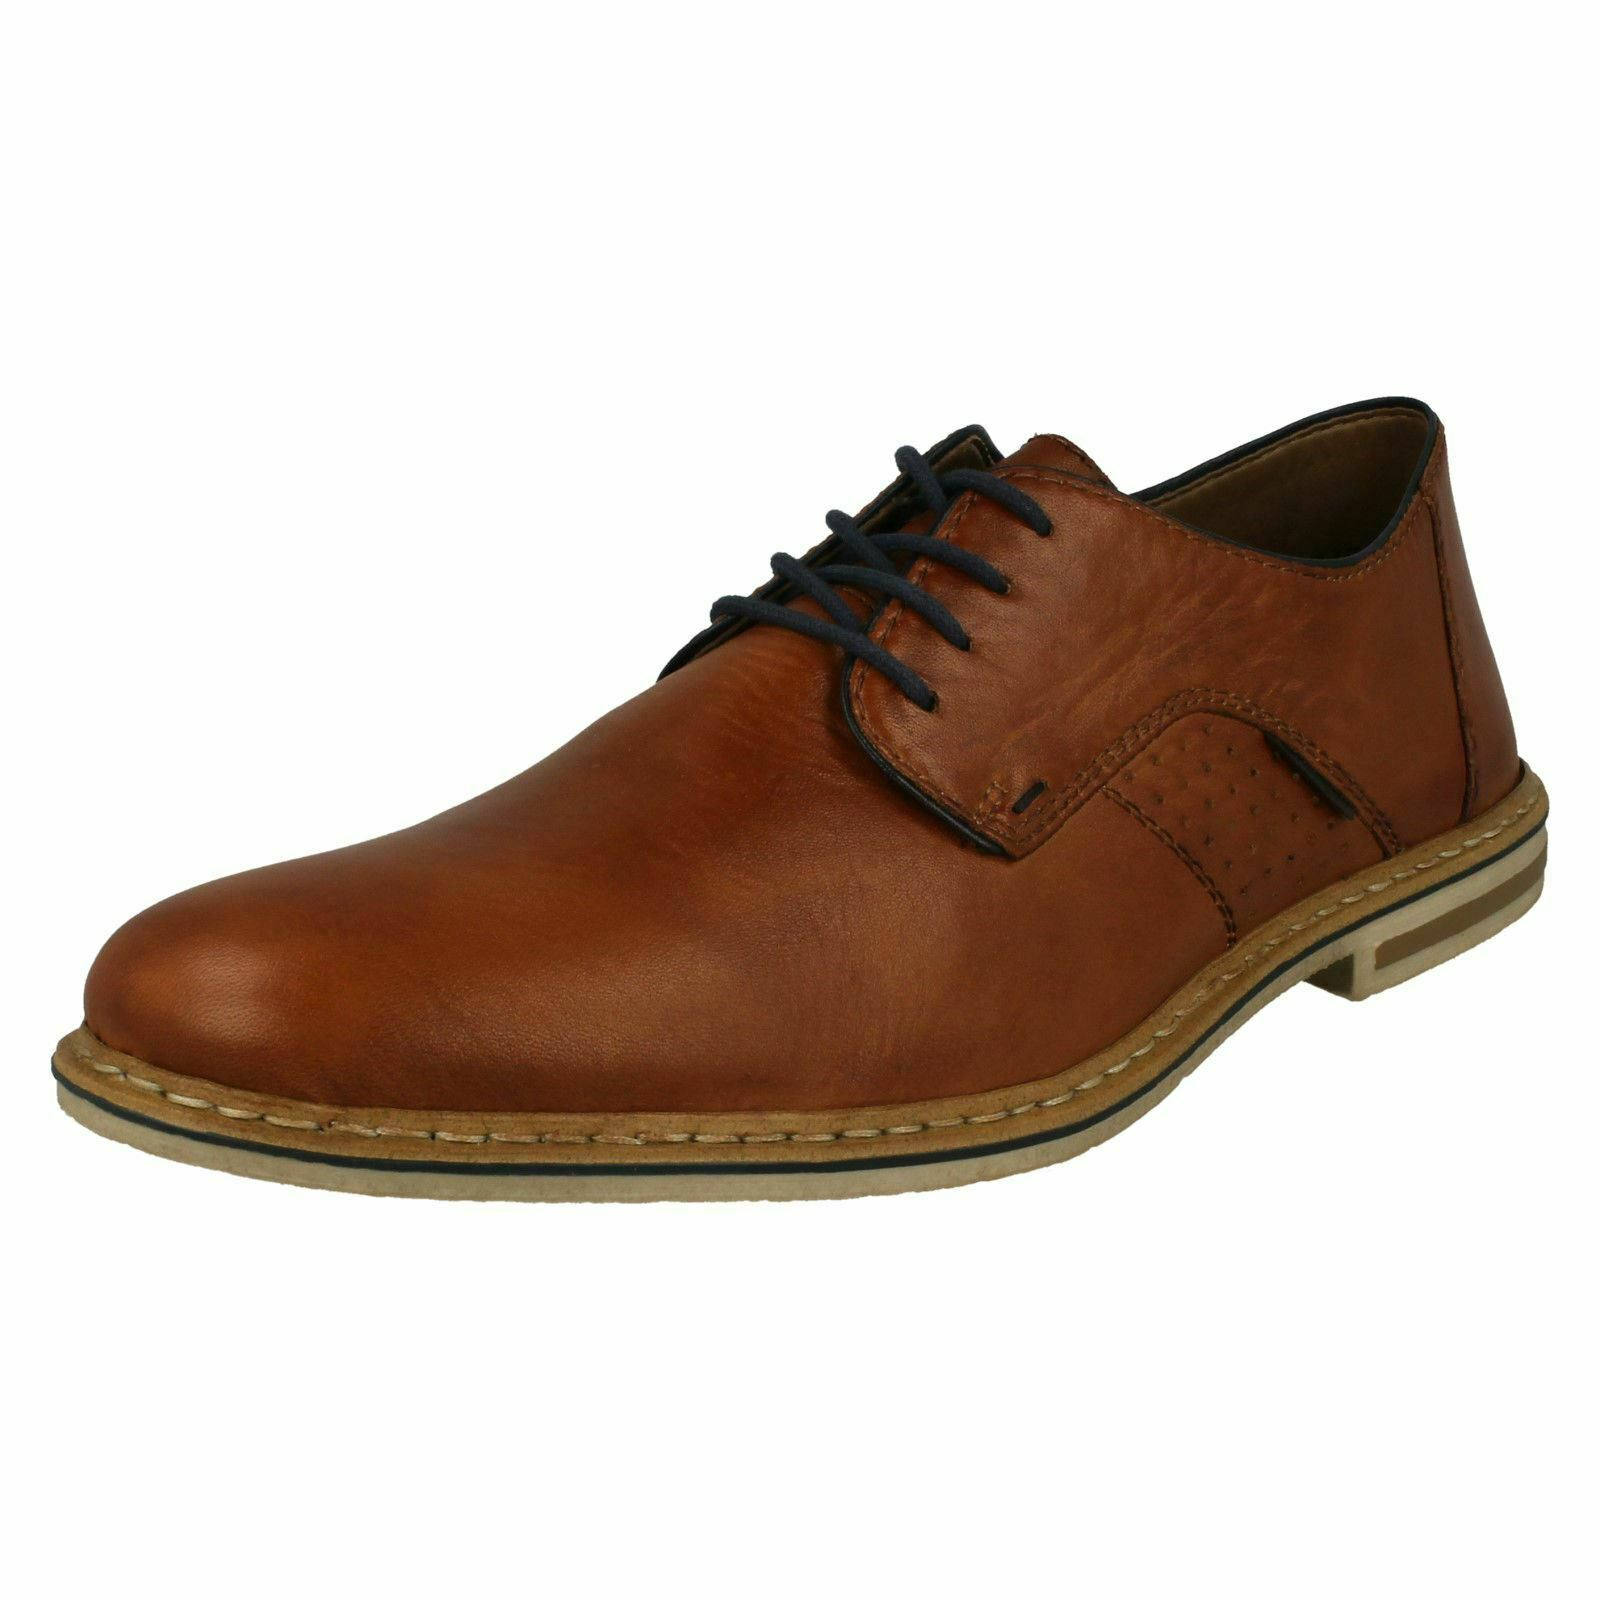 Homme LACE UP chaussures 14525 FORMAL Rieker opxozy3366